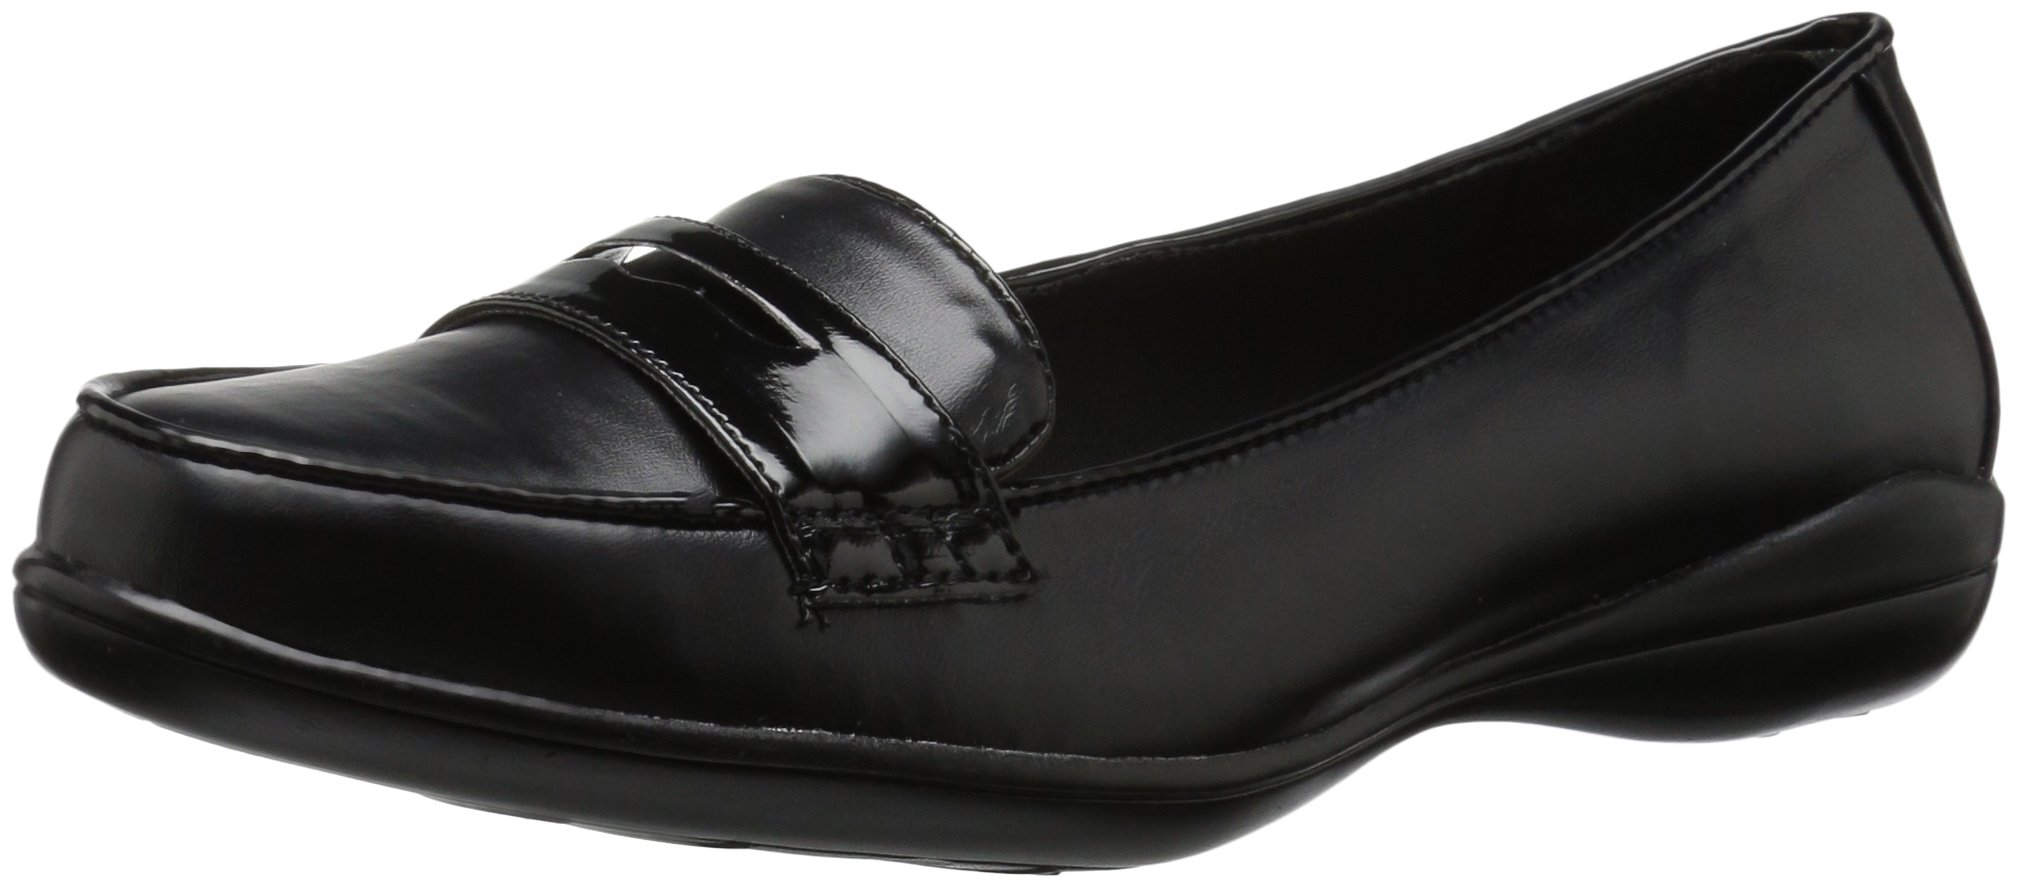 Soft Style by Hush Puppies Women's Daly Penny Loafer, Black Vitello/Patent, 9.5 W US